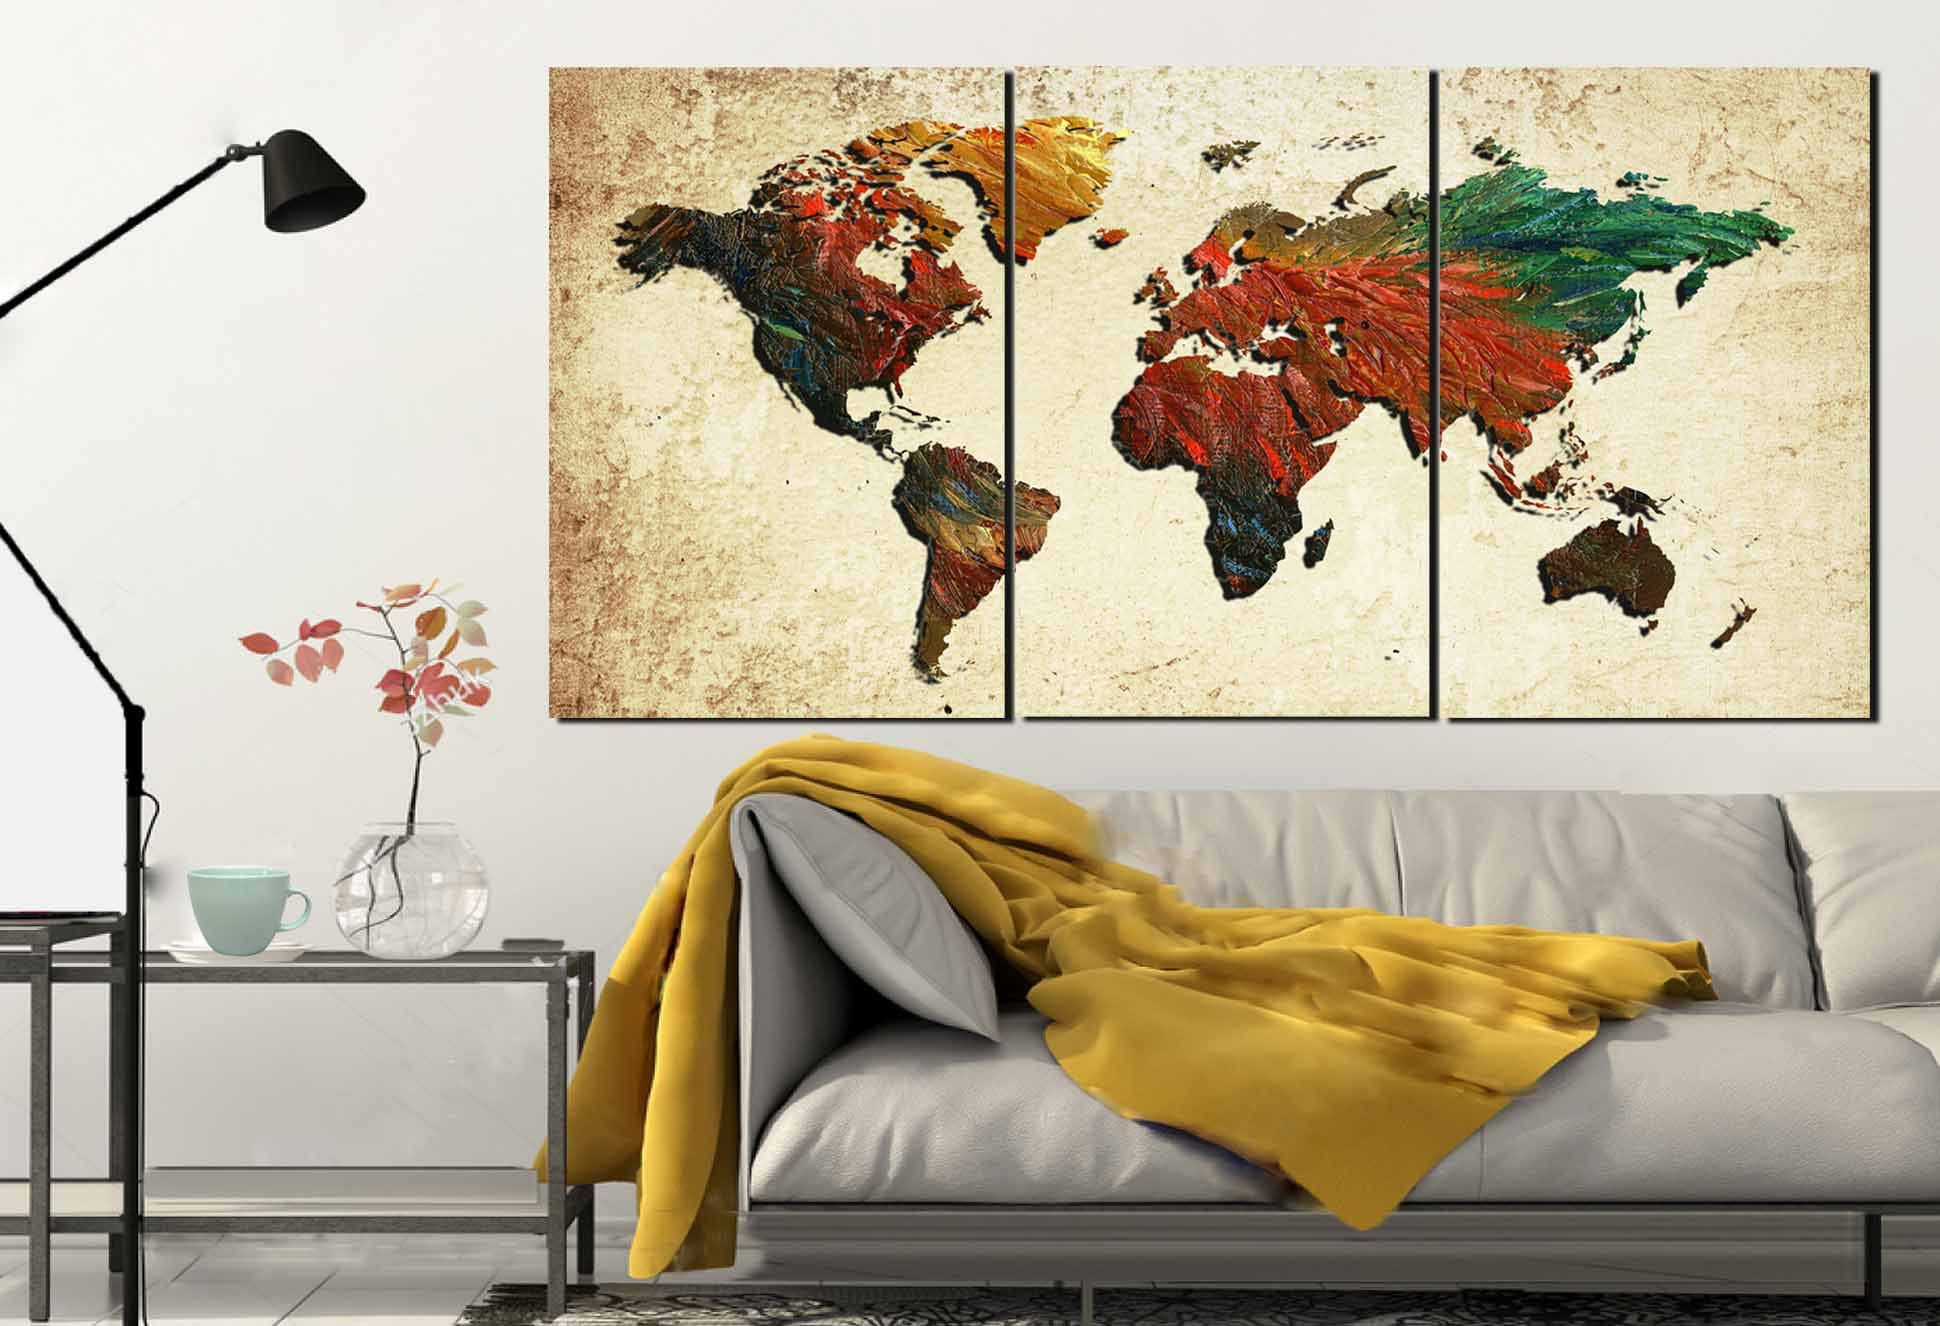 Large world mapworld map world map painting abstract map wall art large world mapworld map world map painting abstract map wall artmap oil paintingworld map canvas printworld map rooster pattern gumiabroncs Choice Image